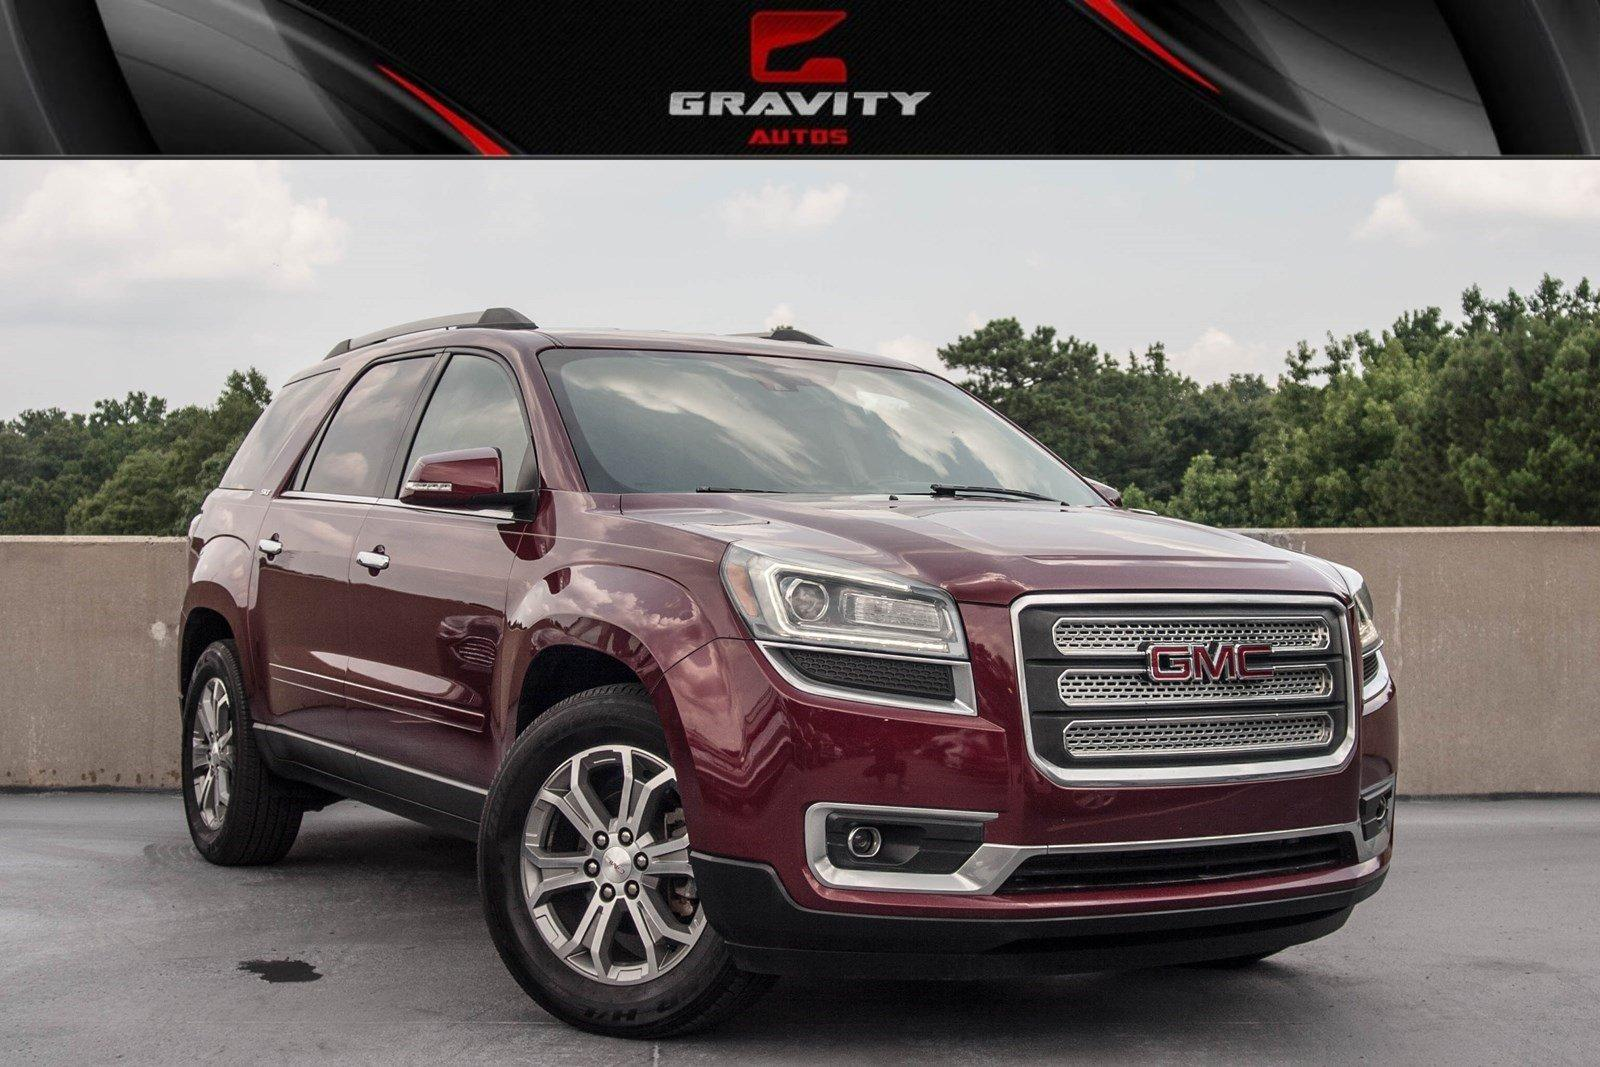 Gmc Acadia For Sale Near Me >> 2015 GMC Acadia SLT Stock # 121466 for sale near Sandy